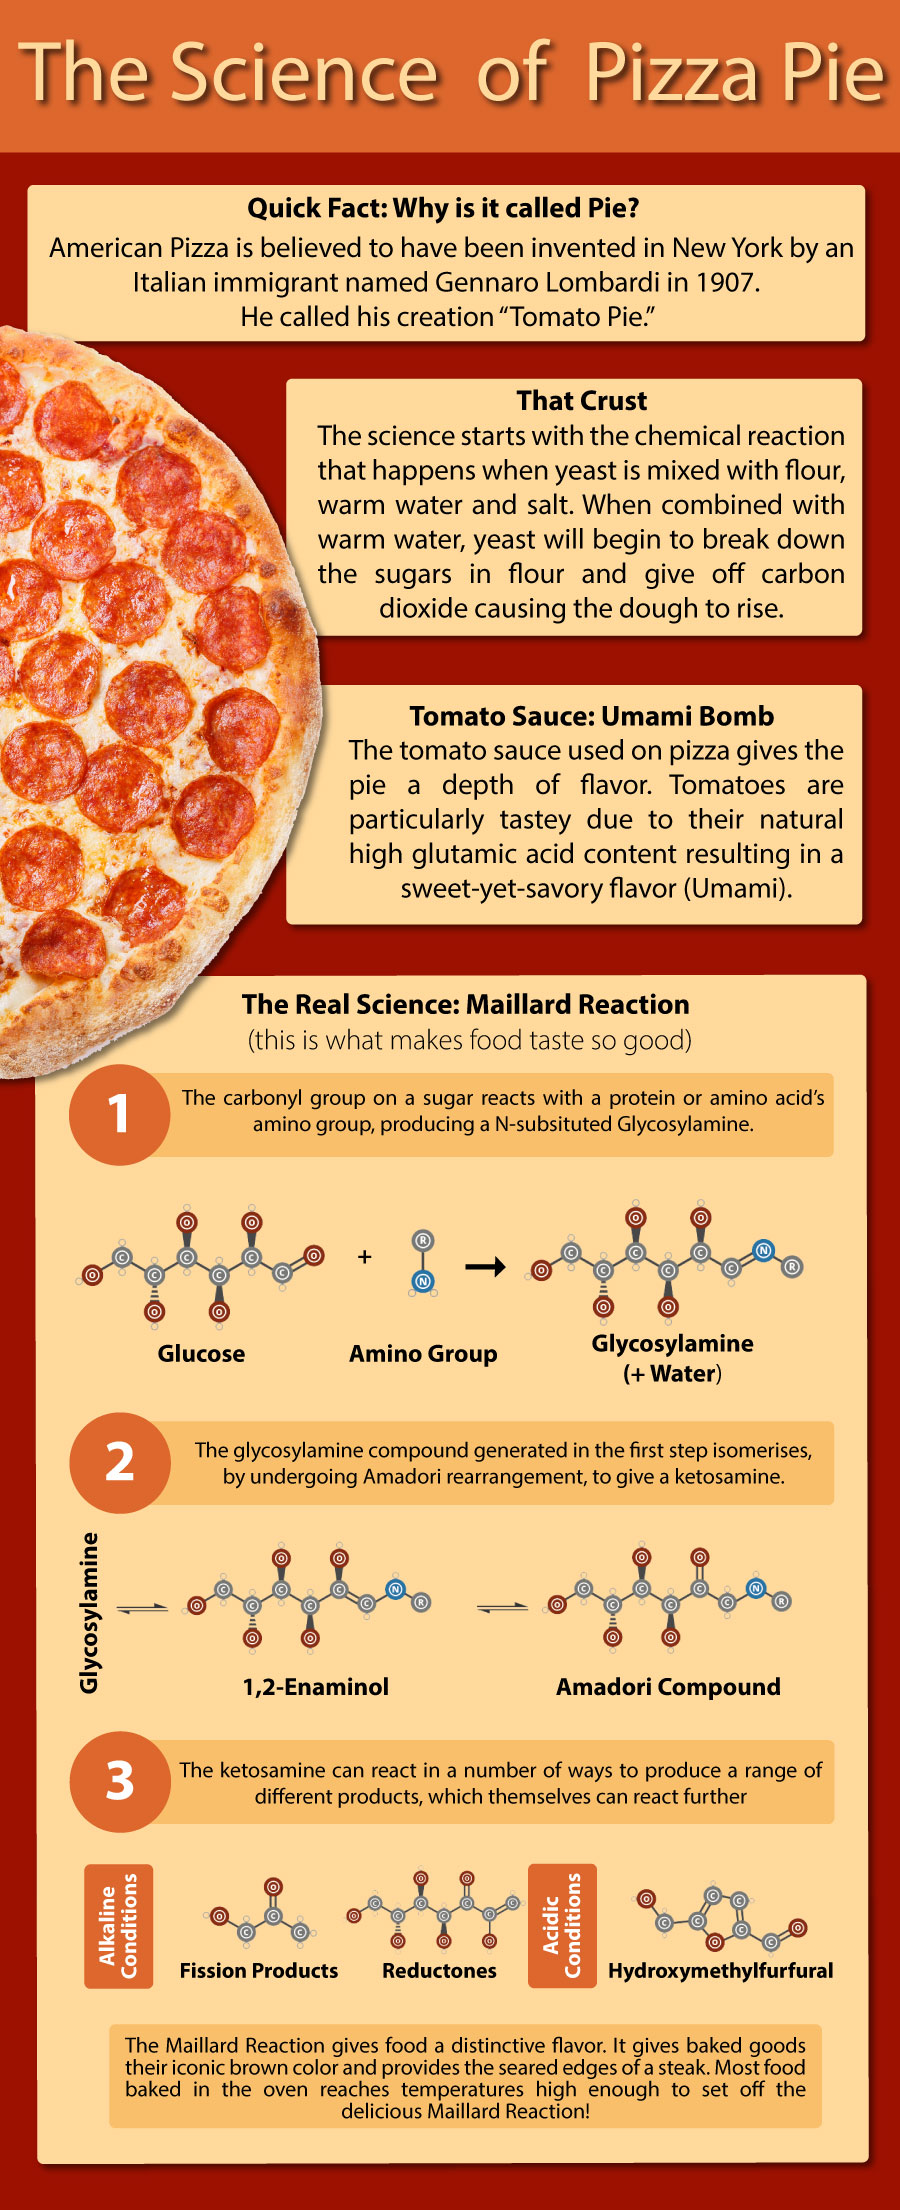 science-of-a-pizza-pie-900px.jpg